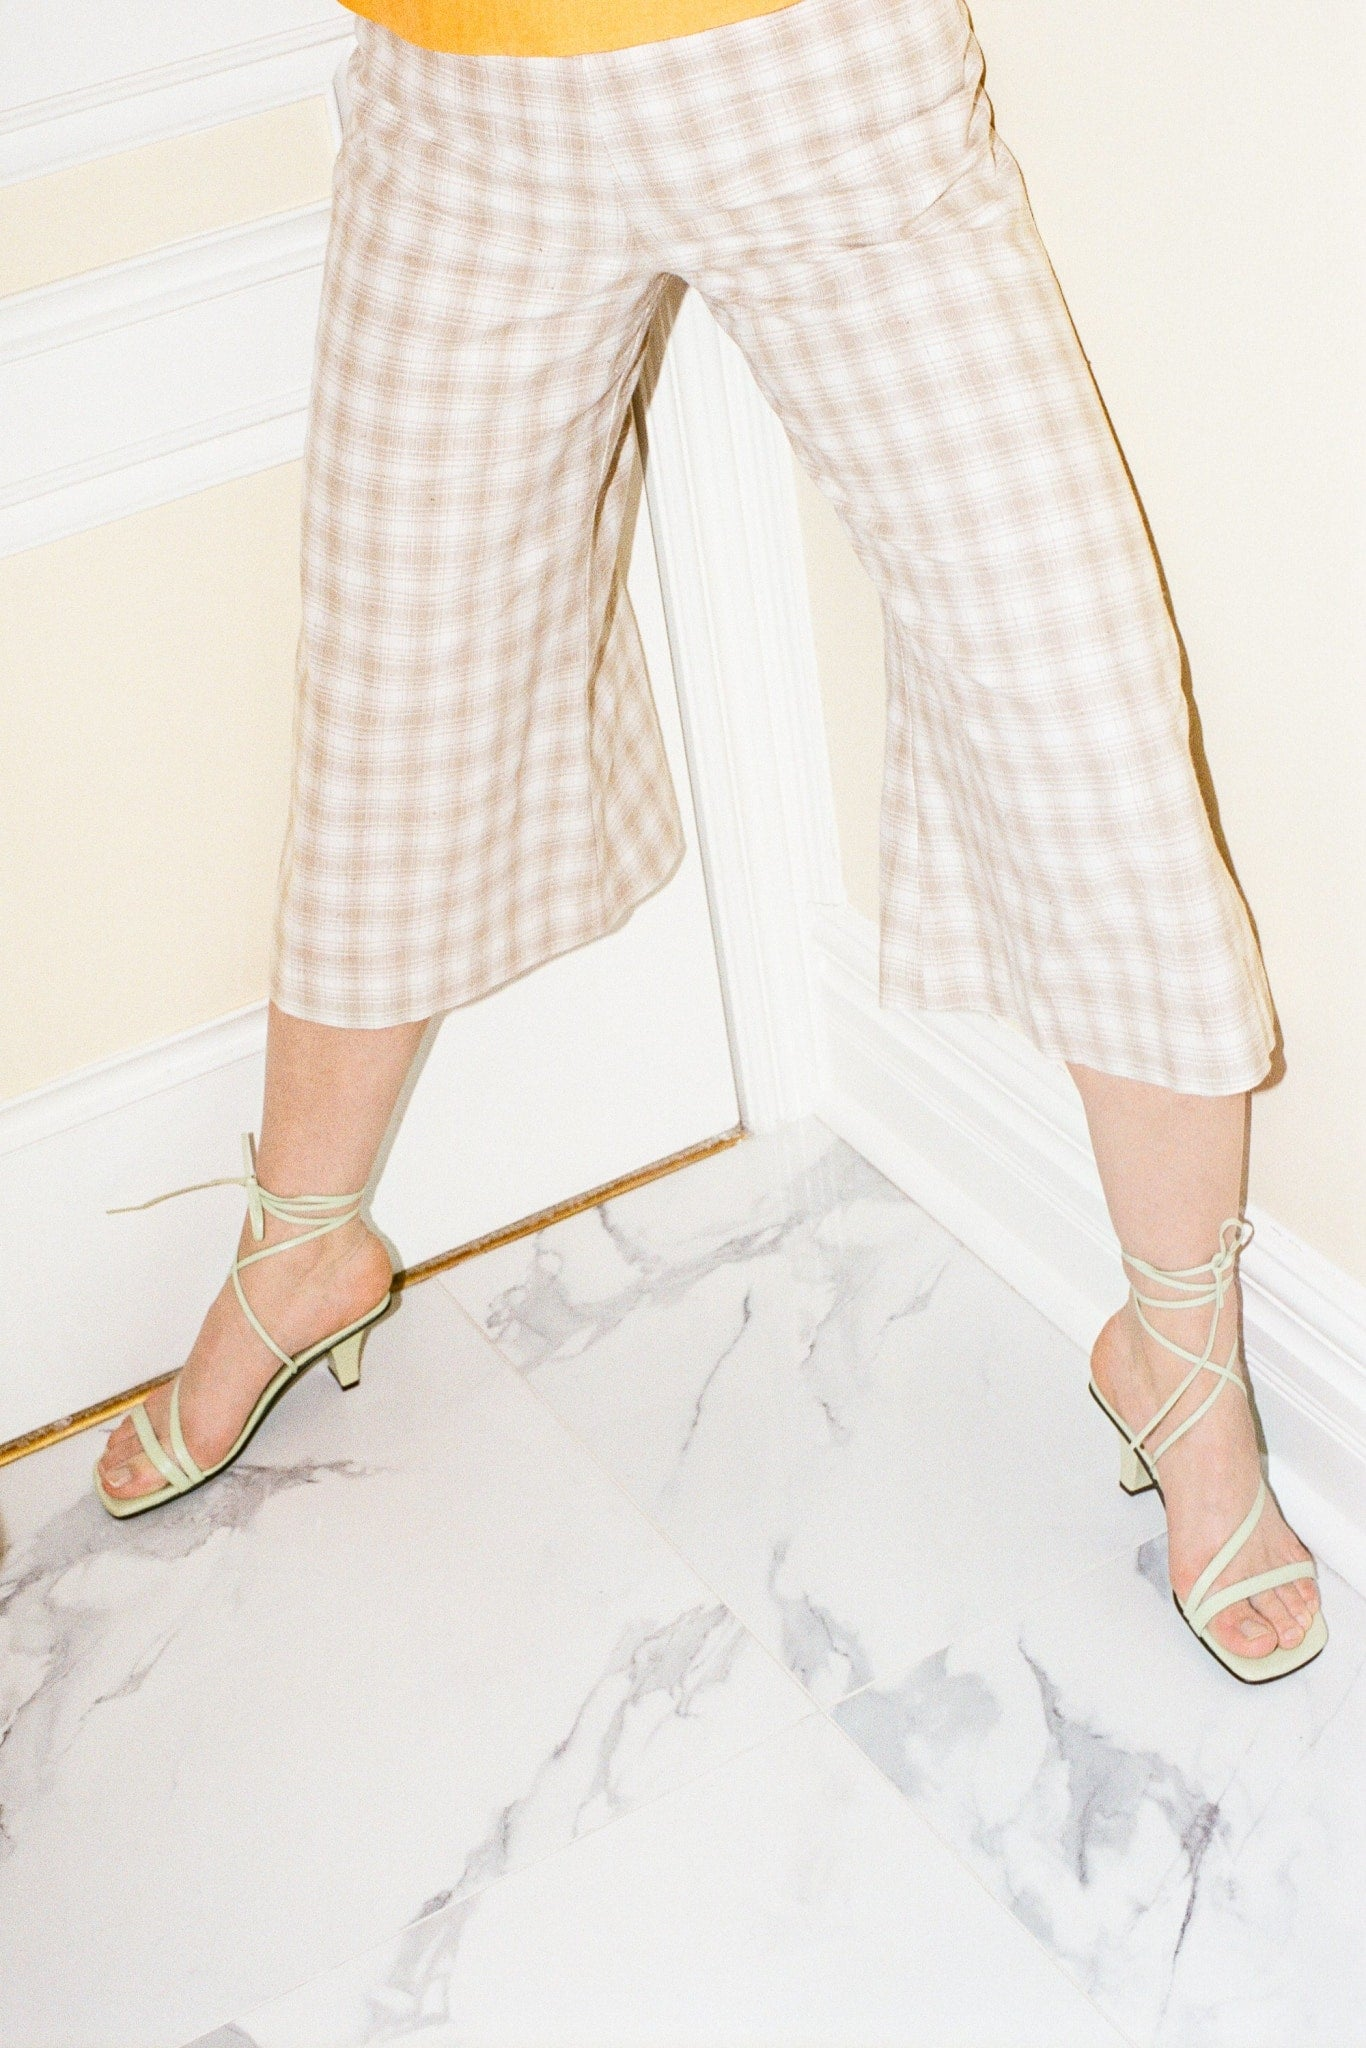 QUINTANA CULOTTES IN ECRU PLAID - Town Clothes